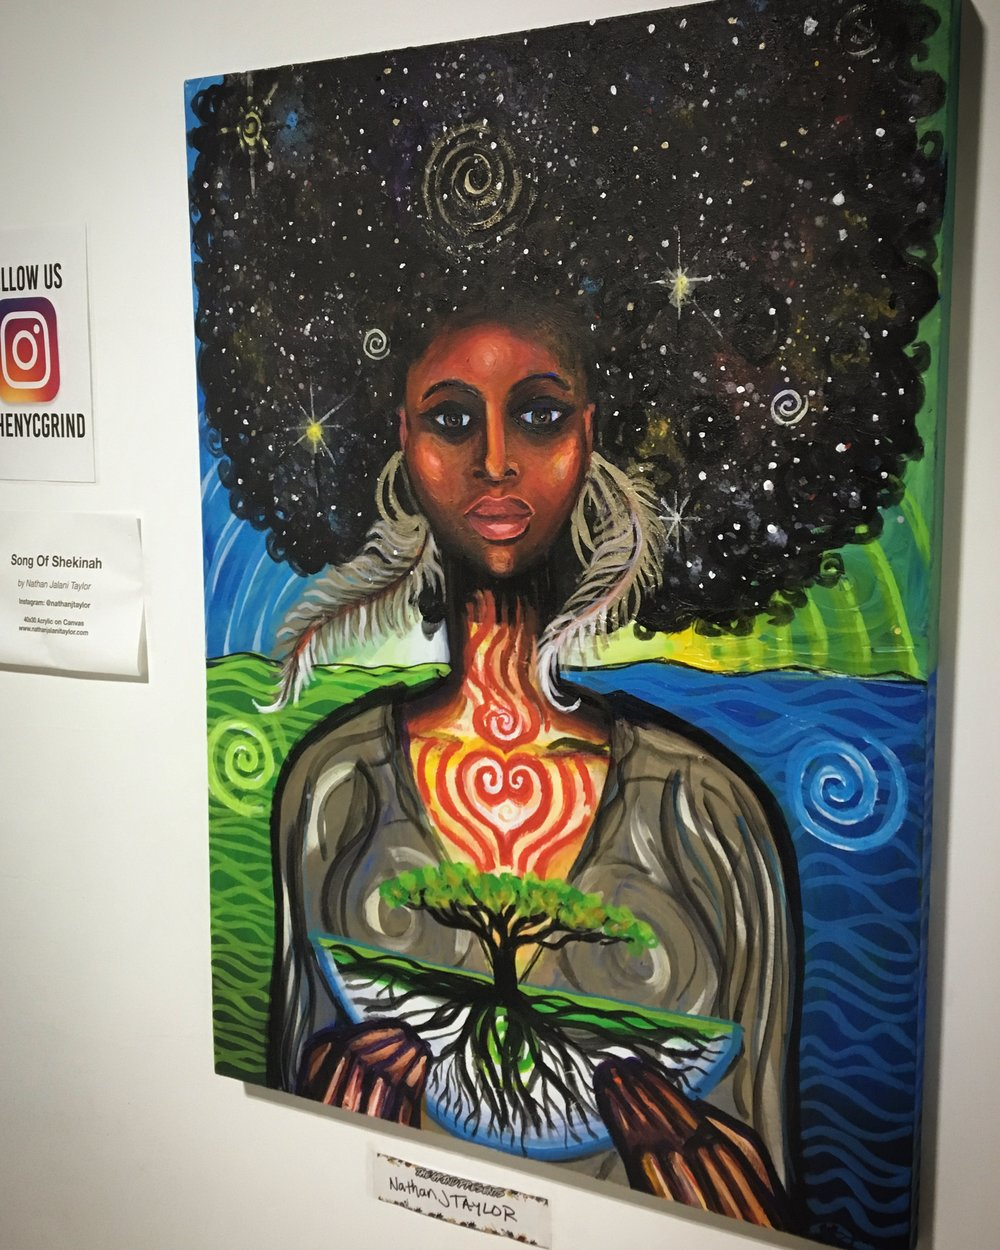 Song Of Shekinah, Painting by Nathan Jalani Taylor on display at the NYC Grind, Queens, NY